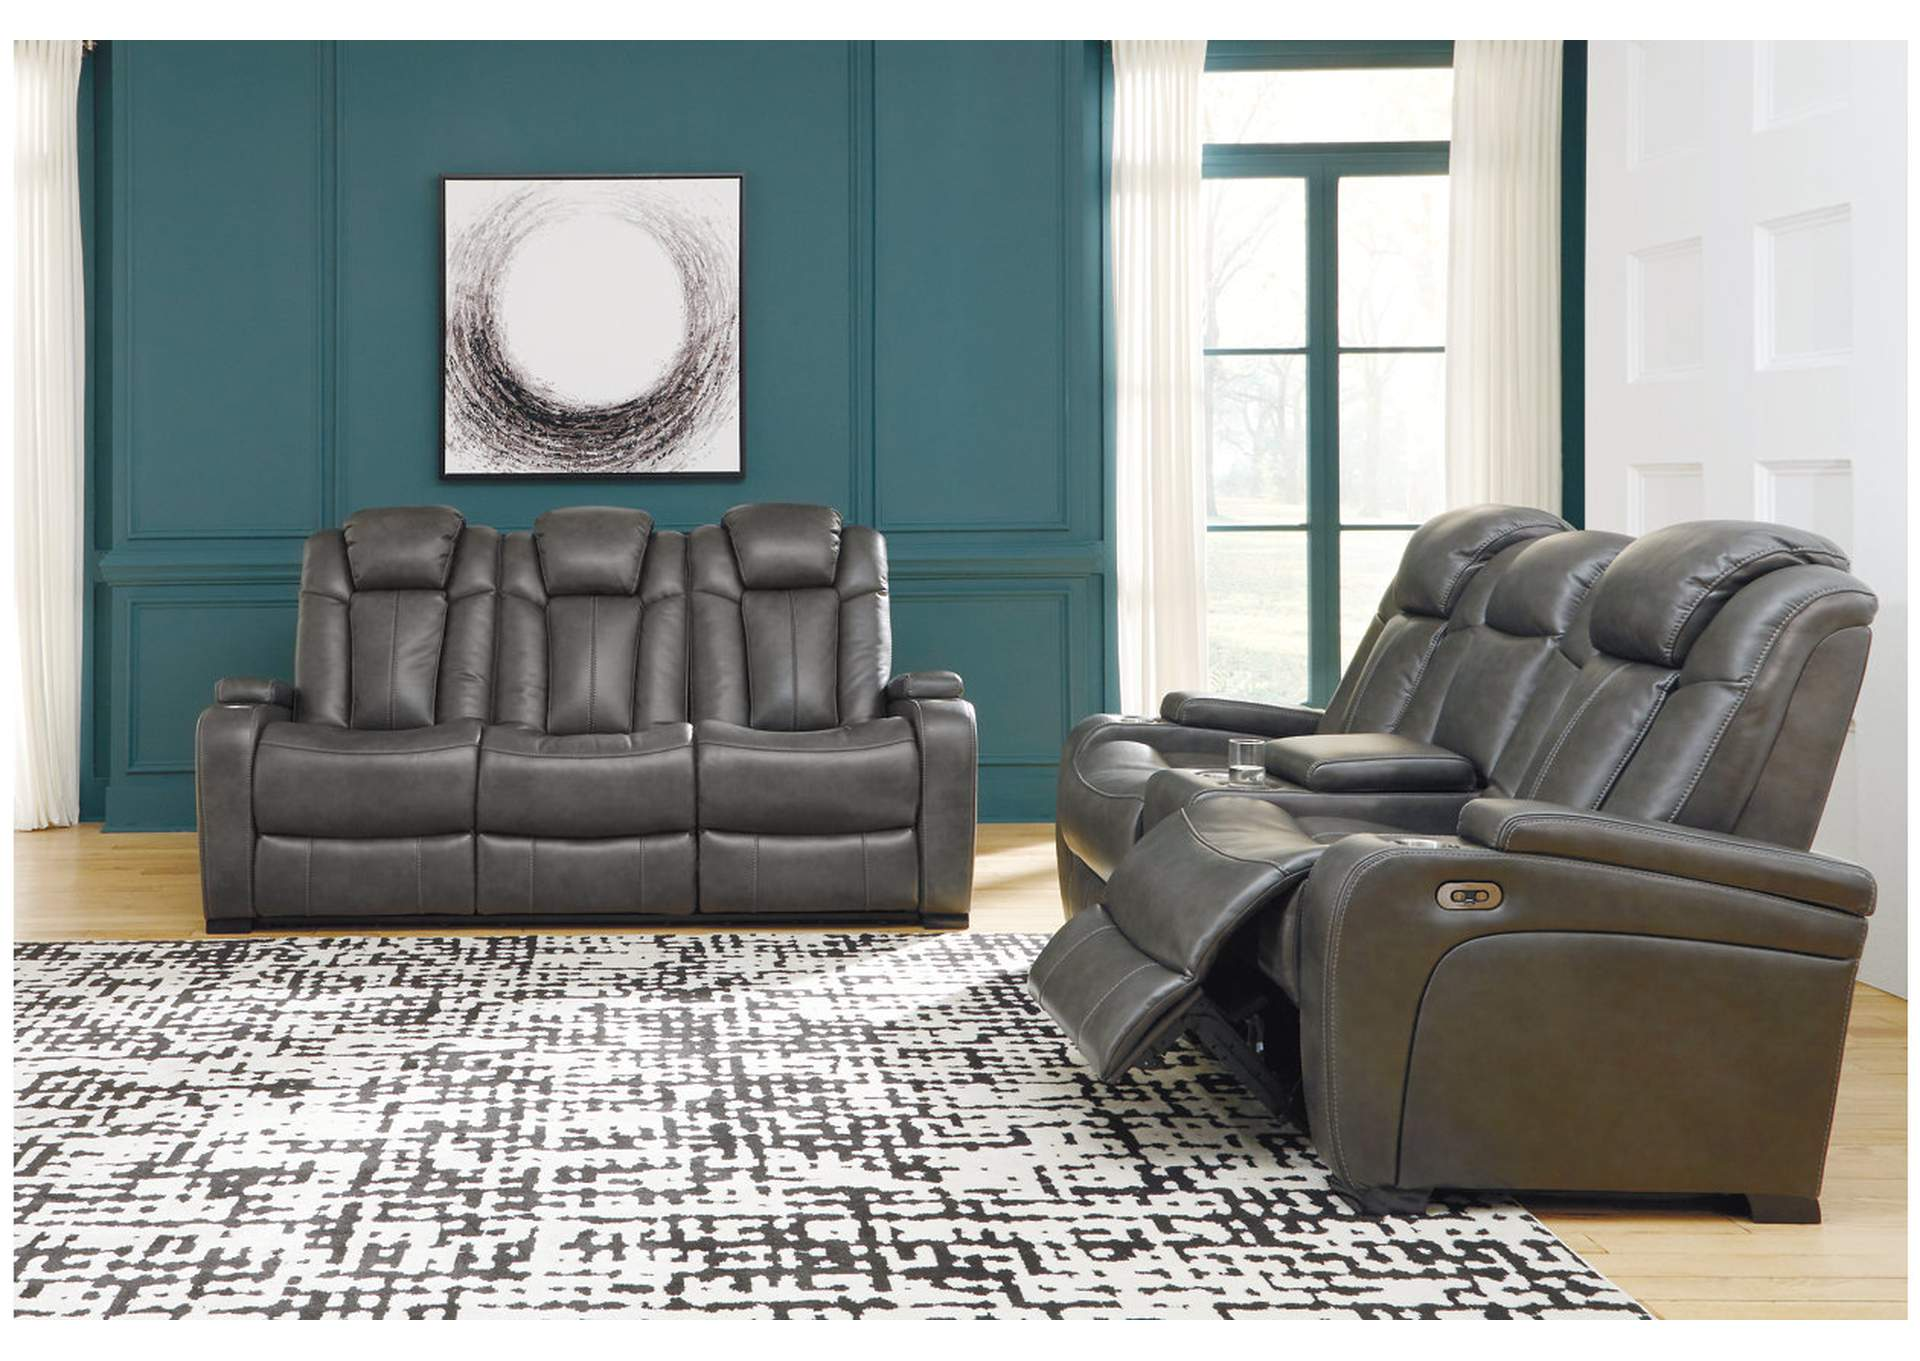 Turbulance Quarry Leather Power Reclining Sofa w/Adjustable Headrest,Signature Design By Ashley